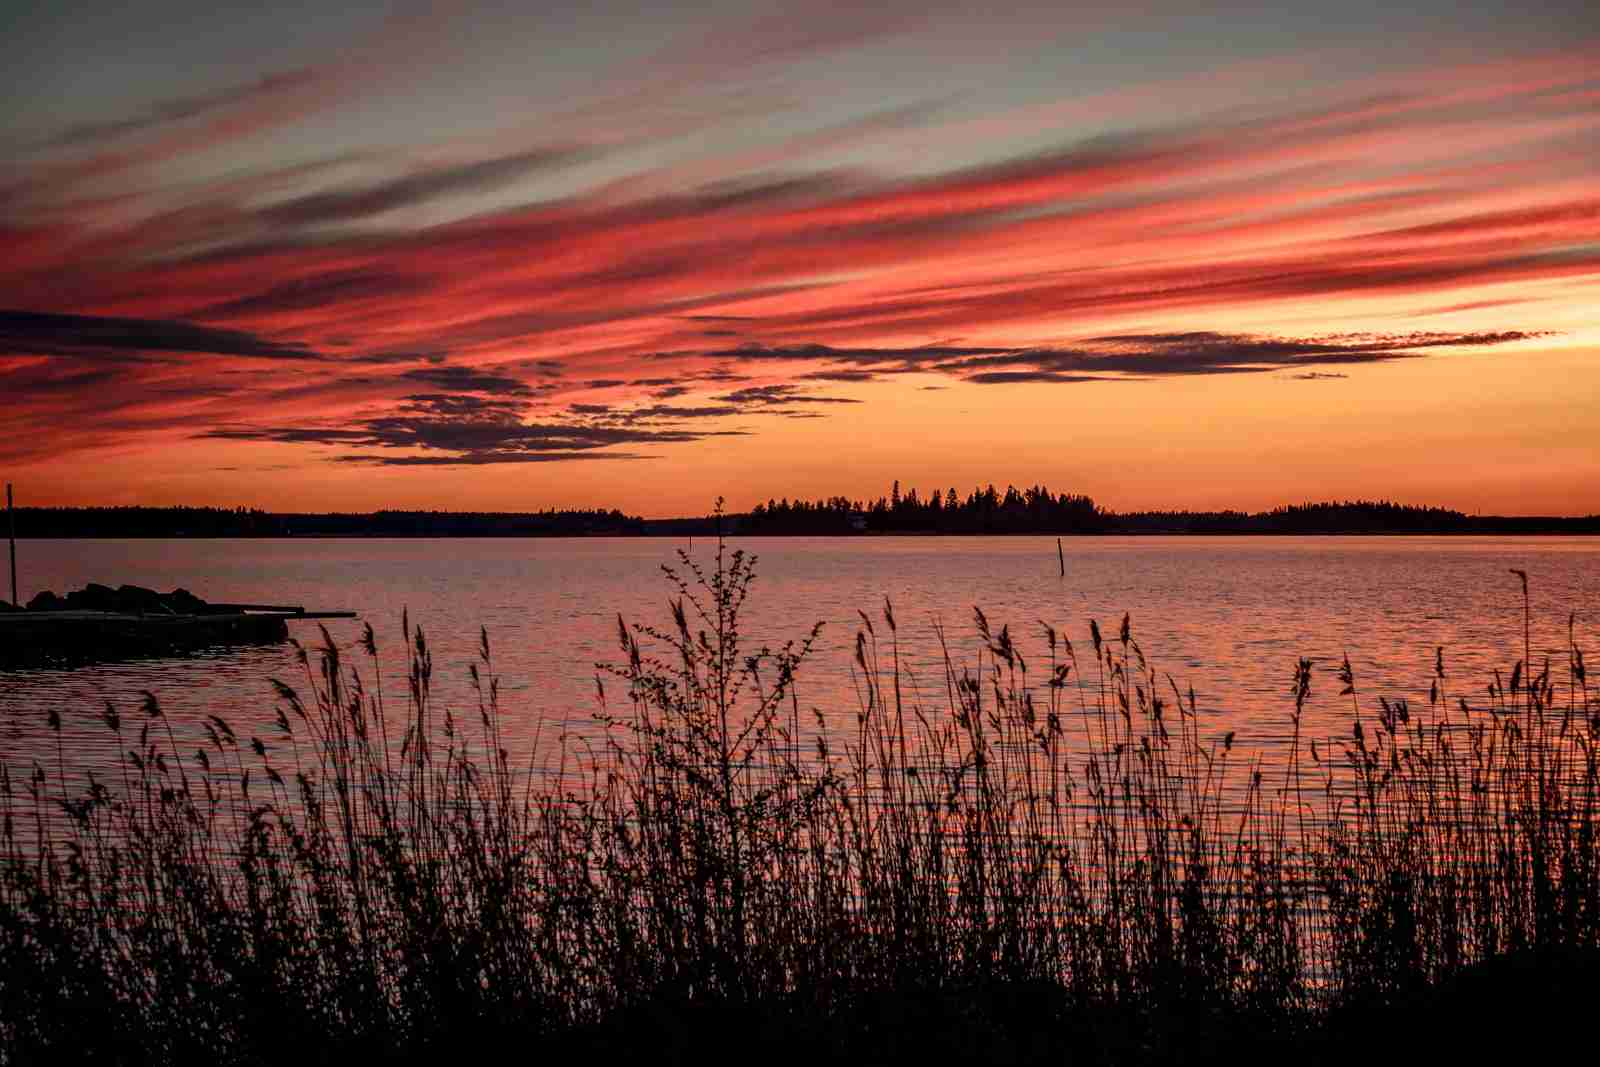 The Bay of Bothnia, Finland. (Photo via Shutterstock)